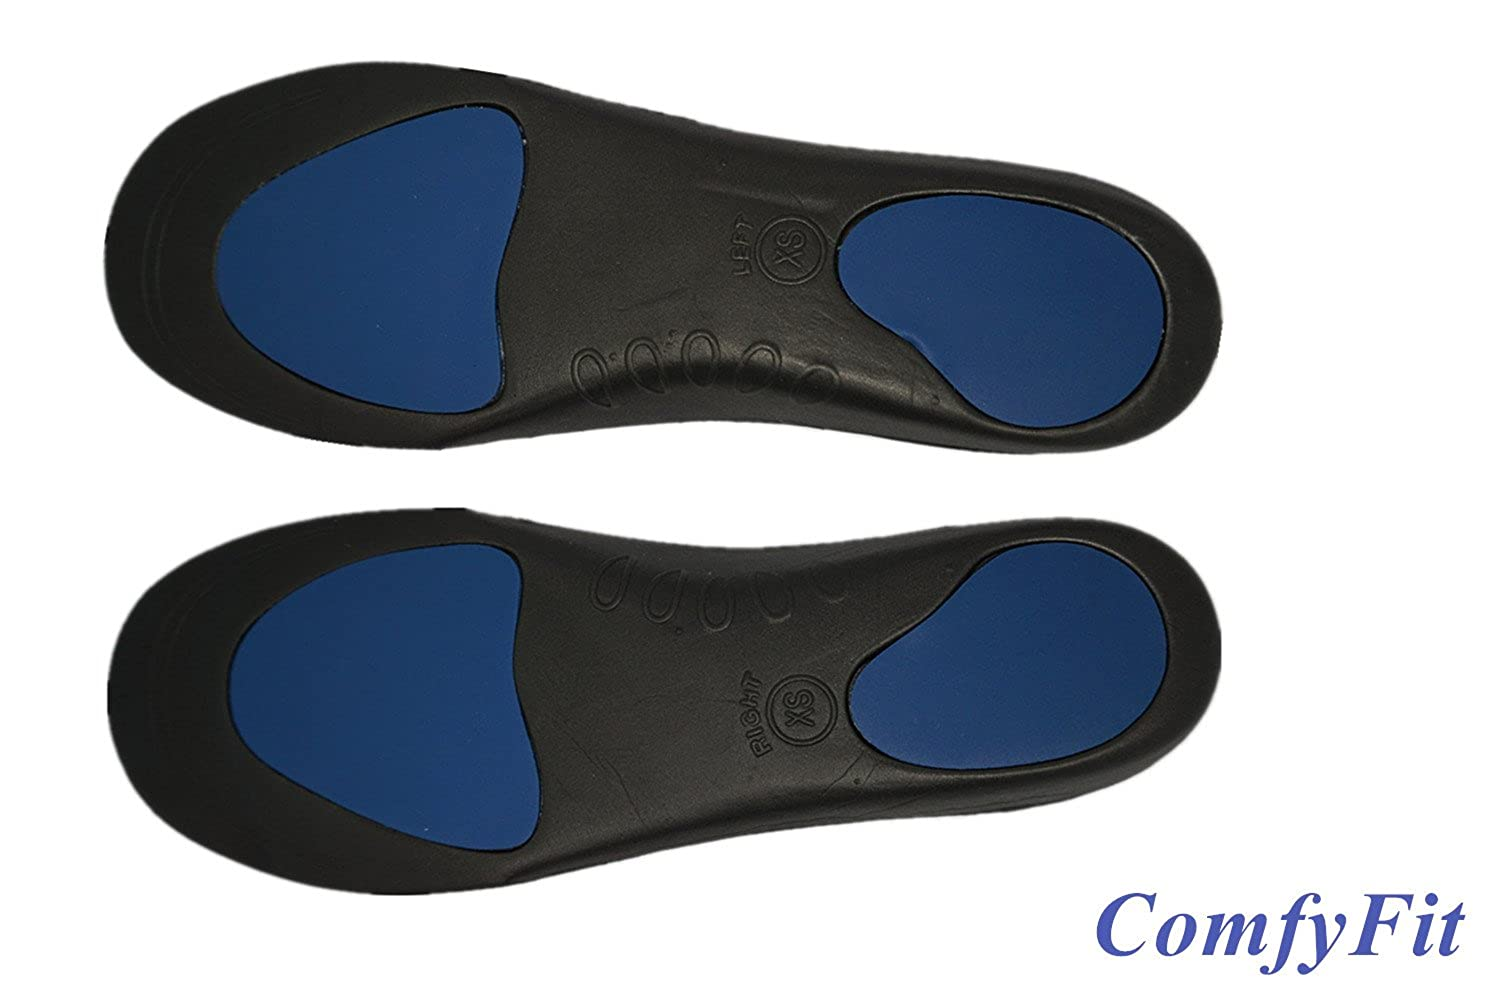 Comfy Fit Orthotic Insoles Metatarsal and Heel Cushion 3D Arch Supports